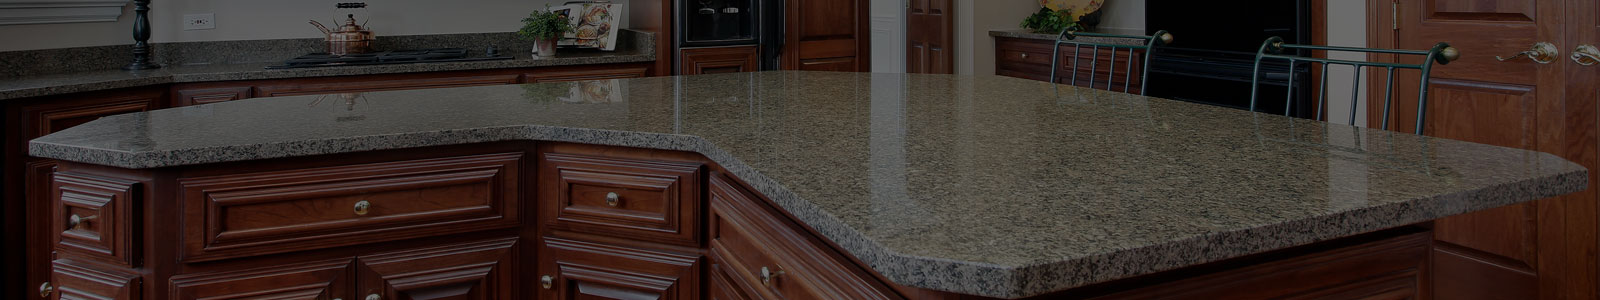 gallery tx in project com houston remodeling countertops granite diamondcutgraniteco